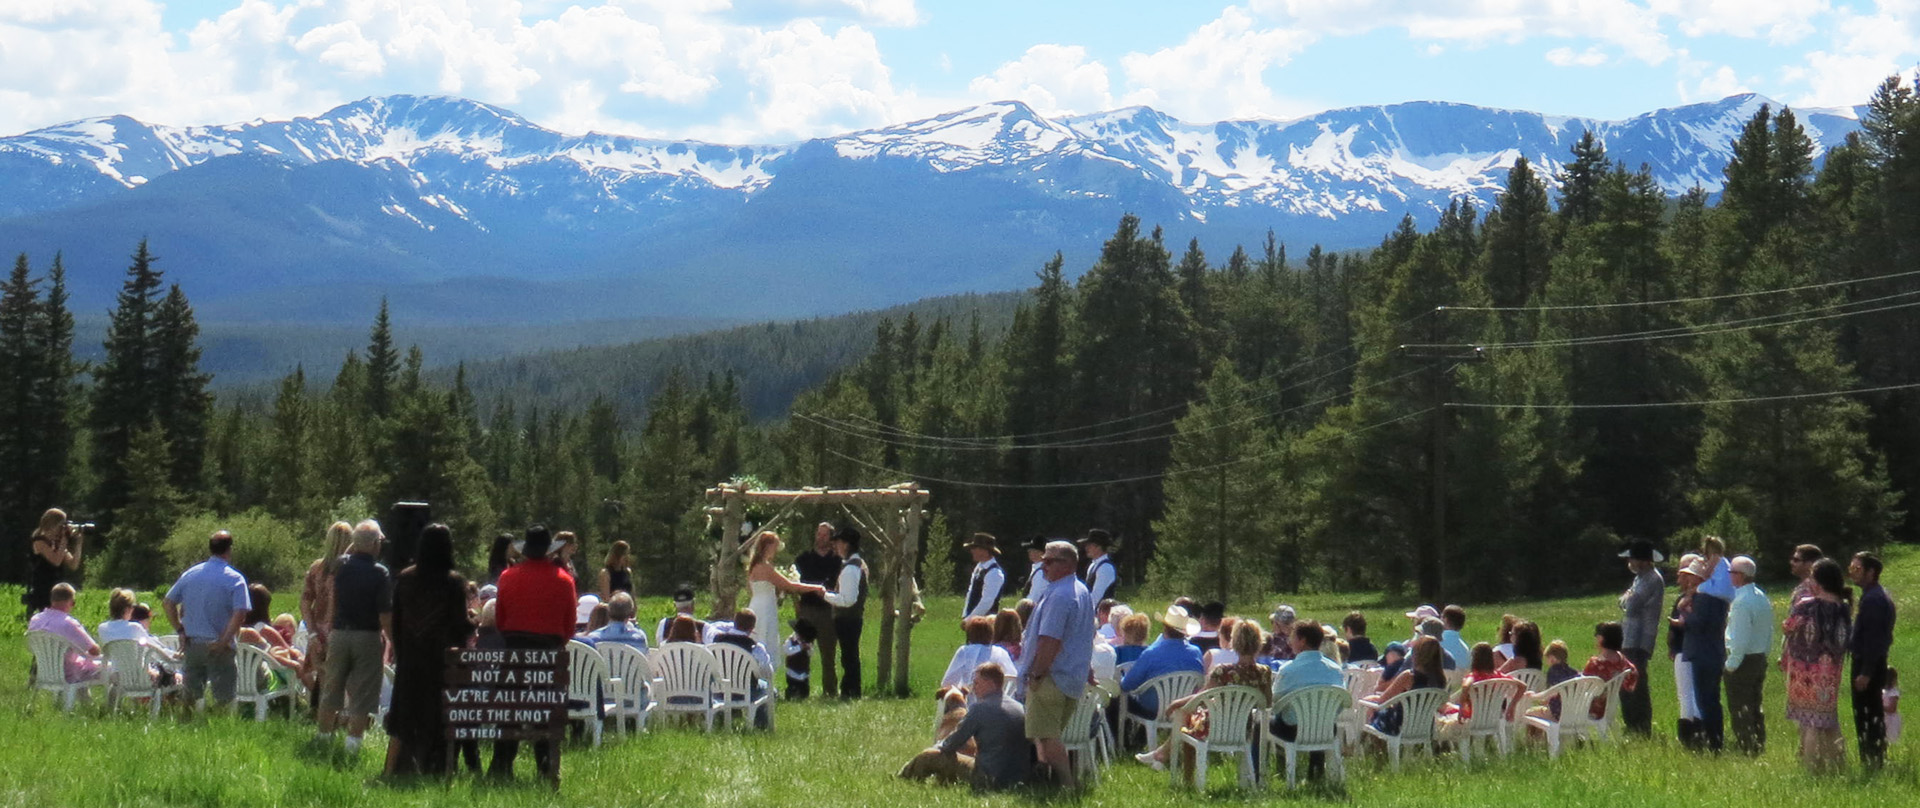 Wedding with mountains in the background